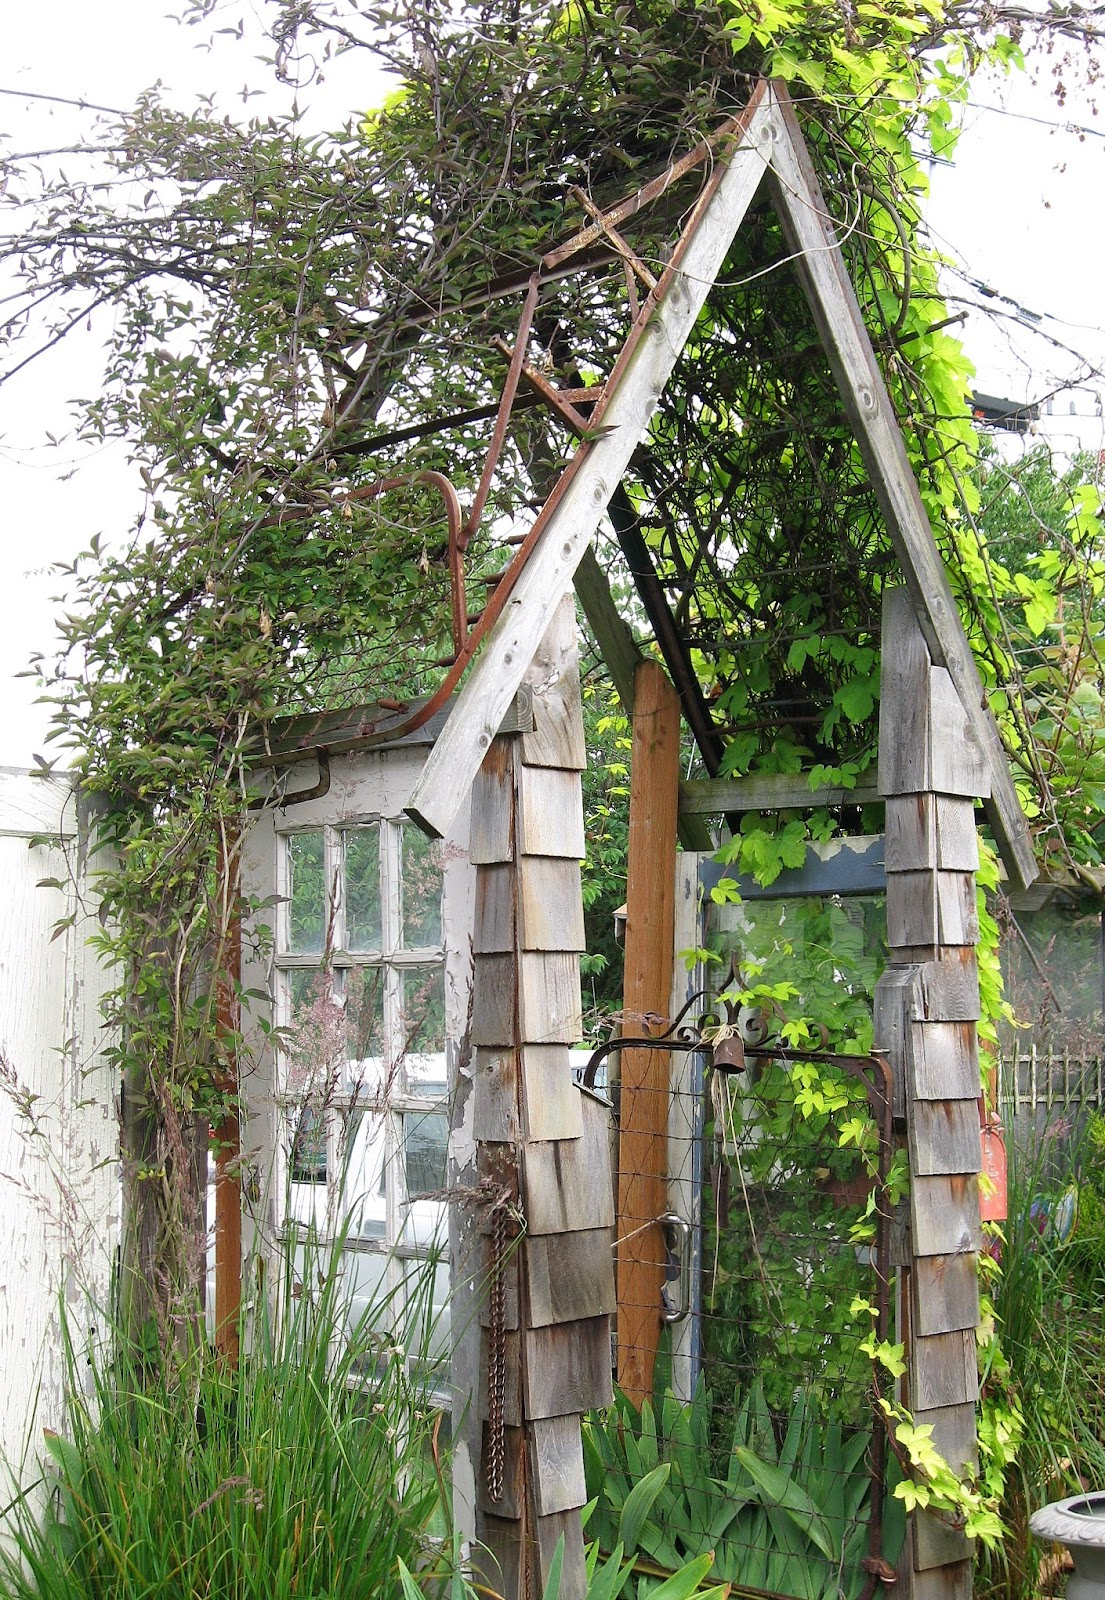 four corners design A day in the garden